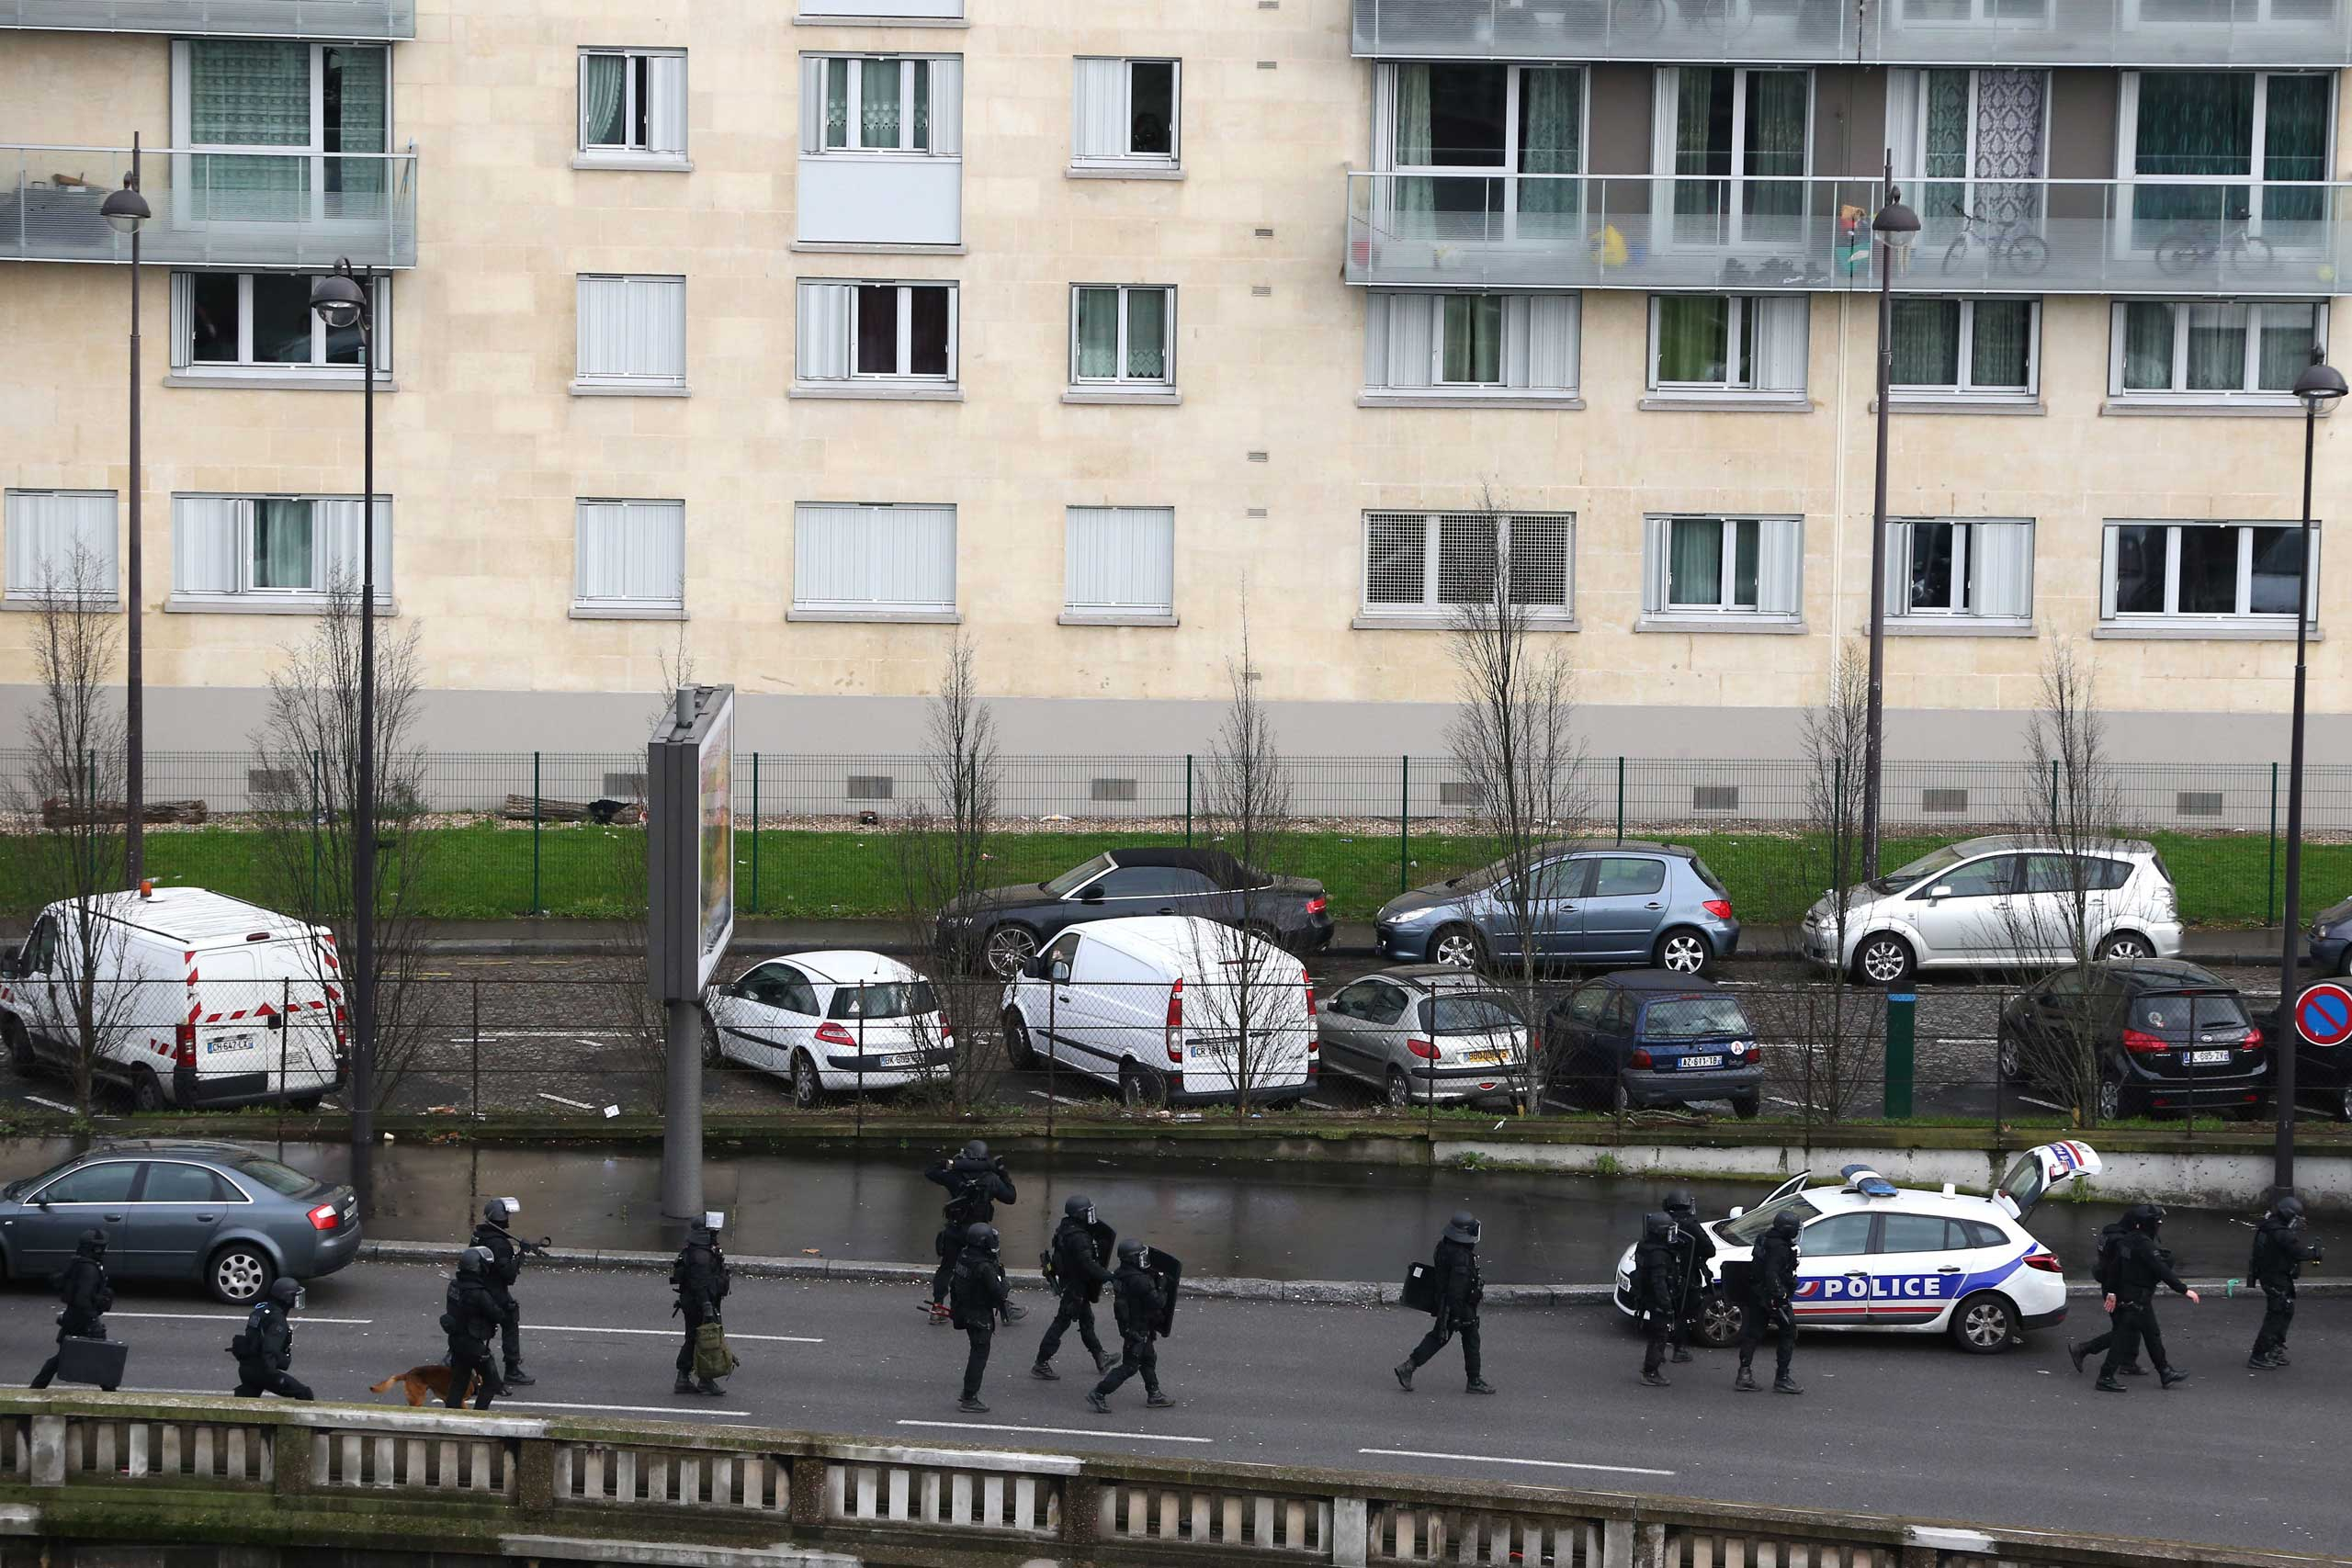 Police mobilize with reports of a hostage situation at Port de Vincennes on Jan. 9, 2015 in Paris.